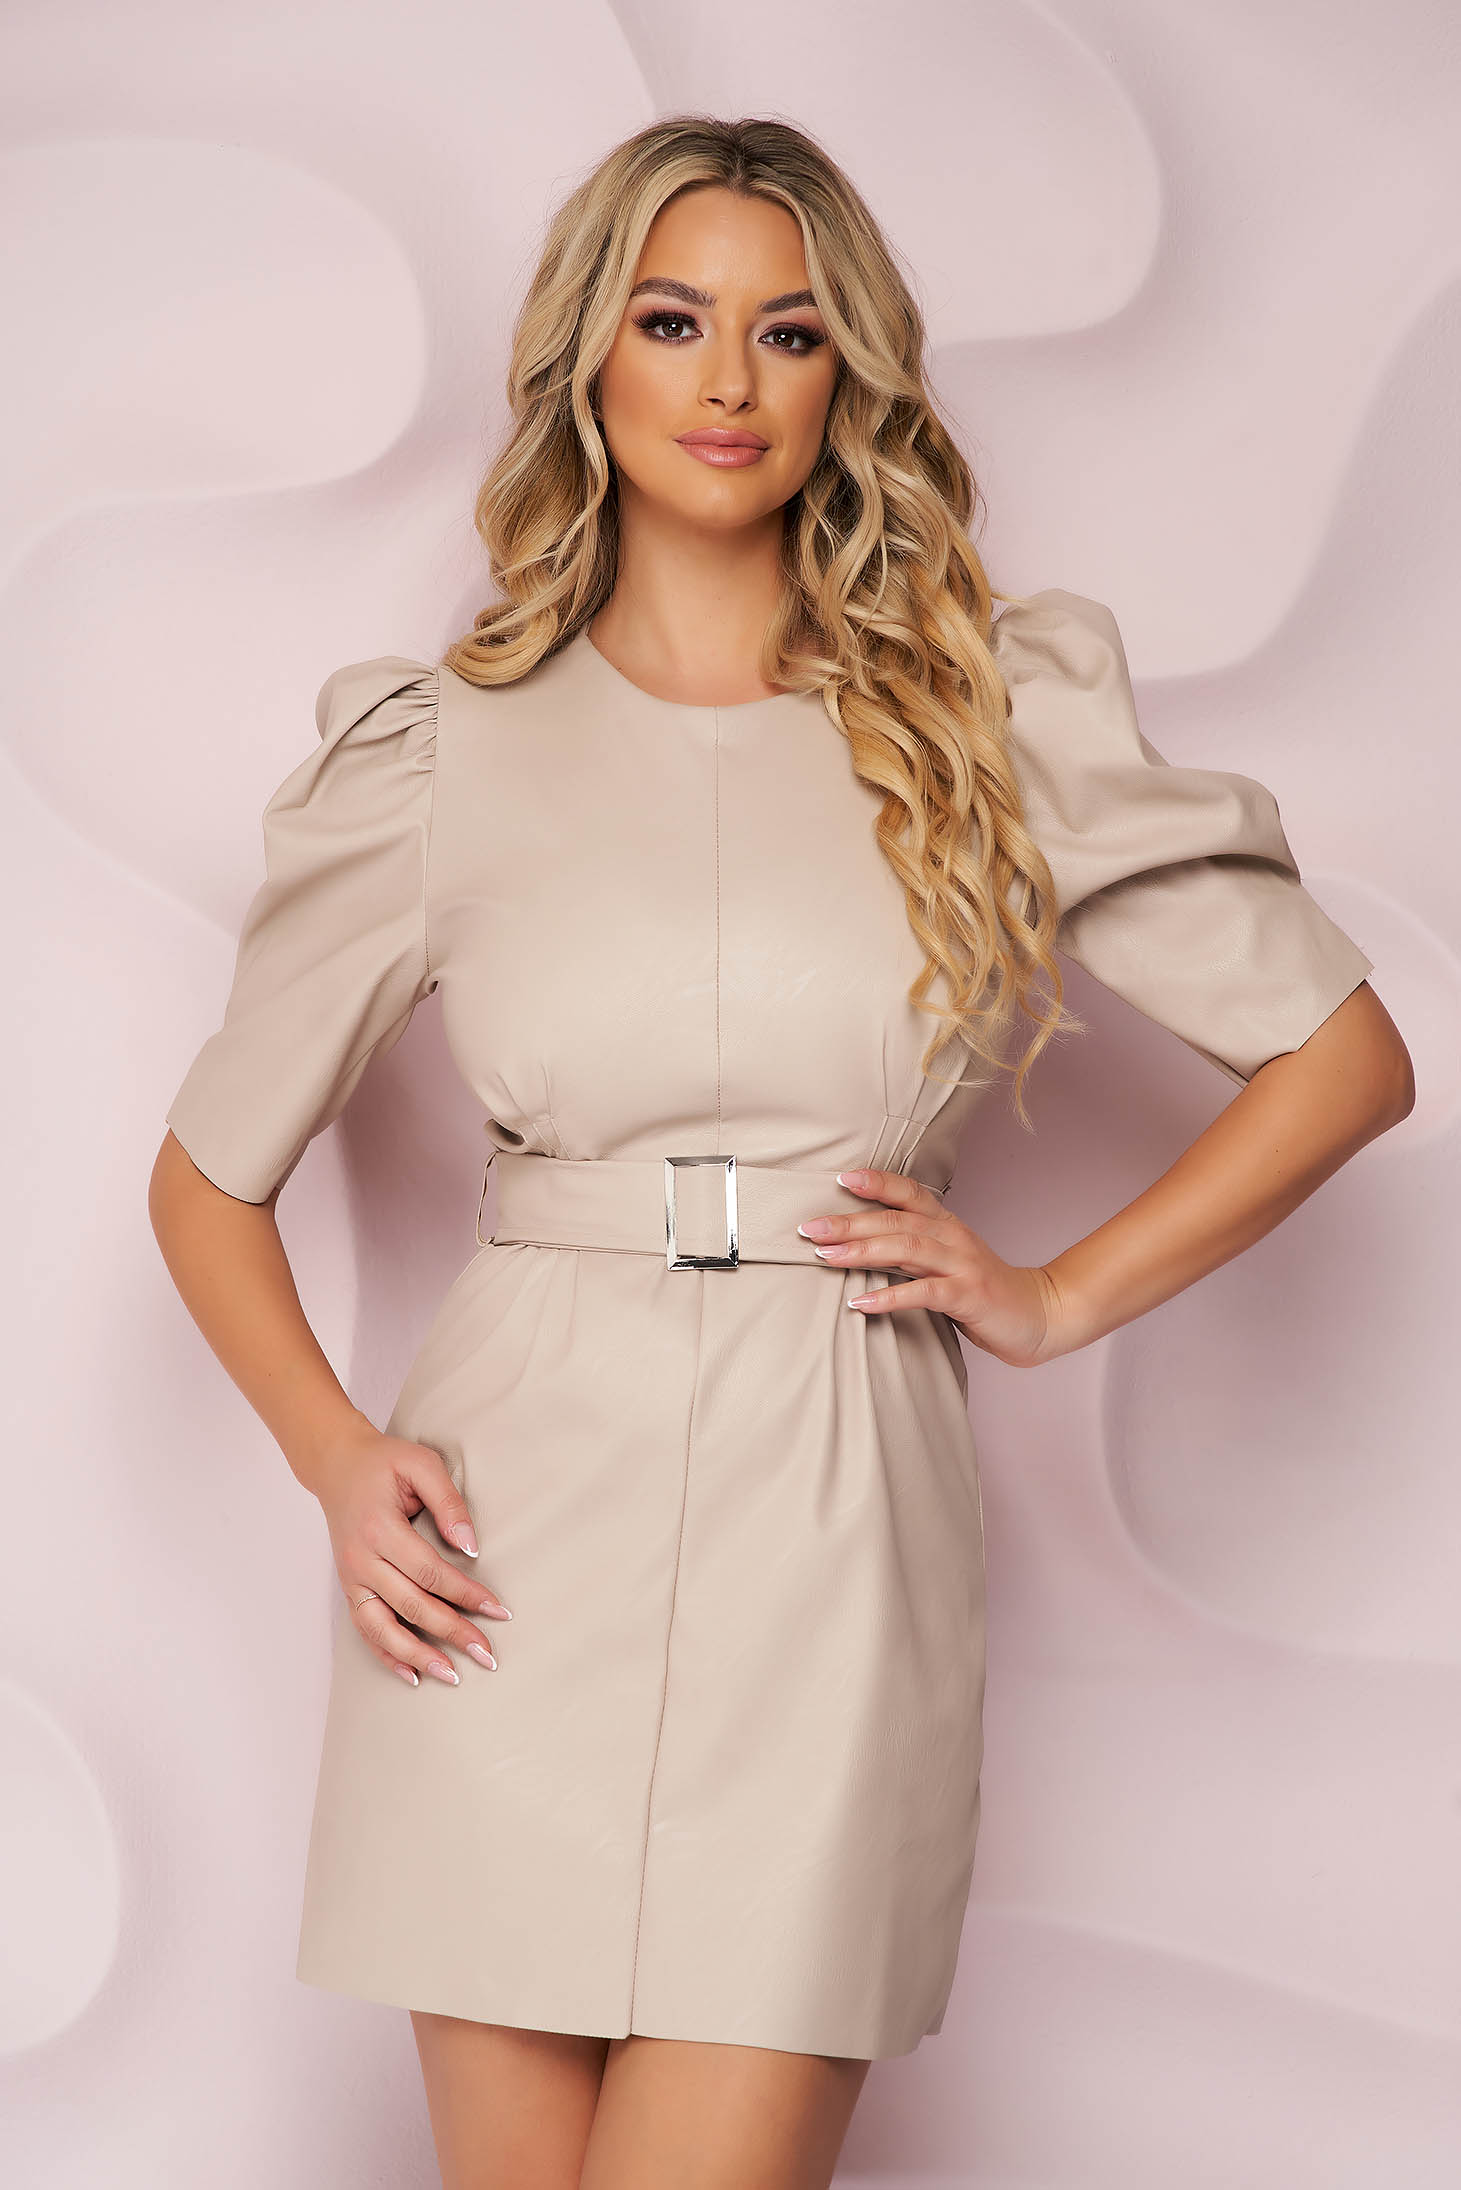 Cream dress from ecological leather accessorized with belt with puffed sleeves short cut straight